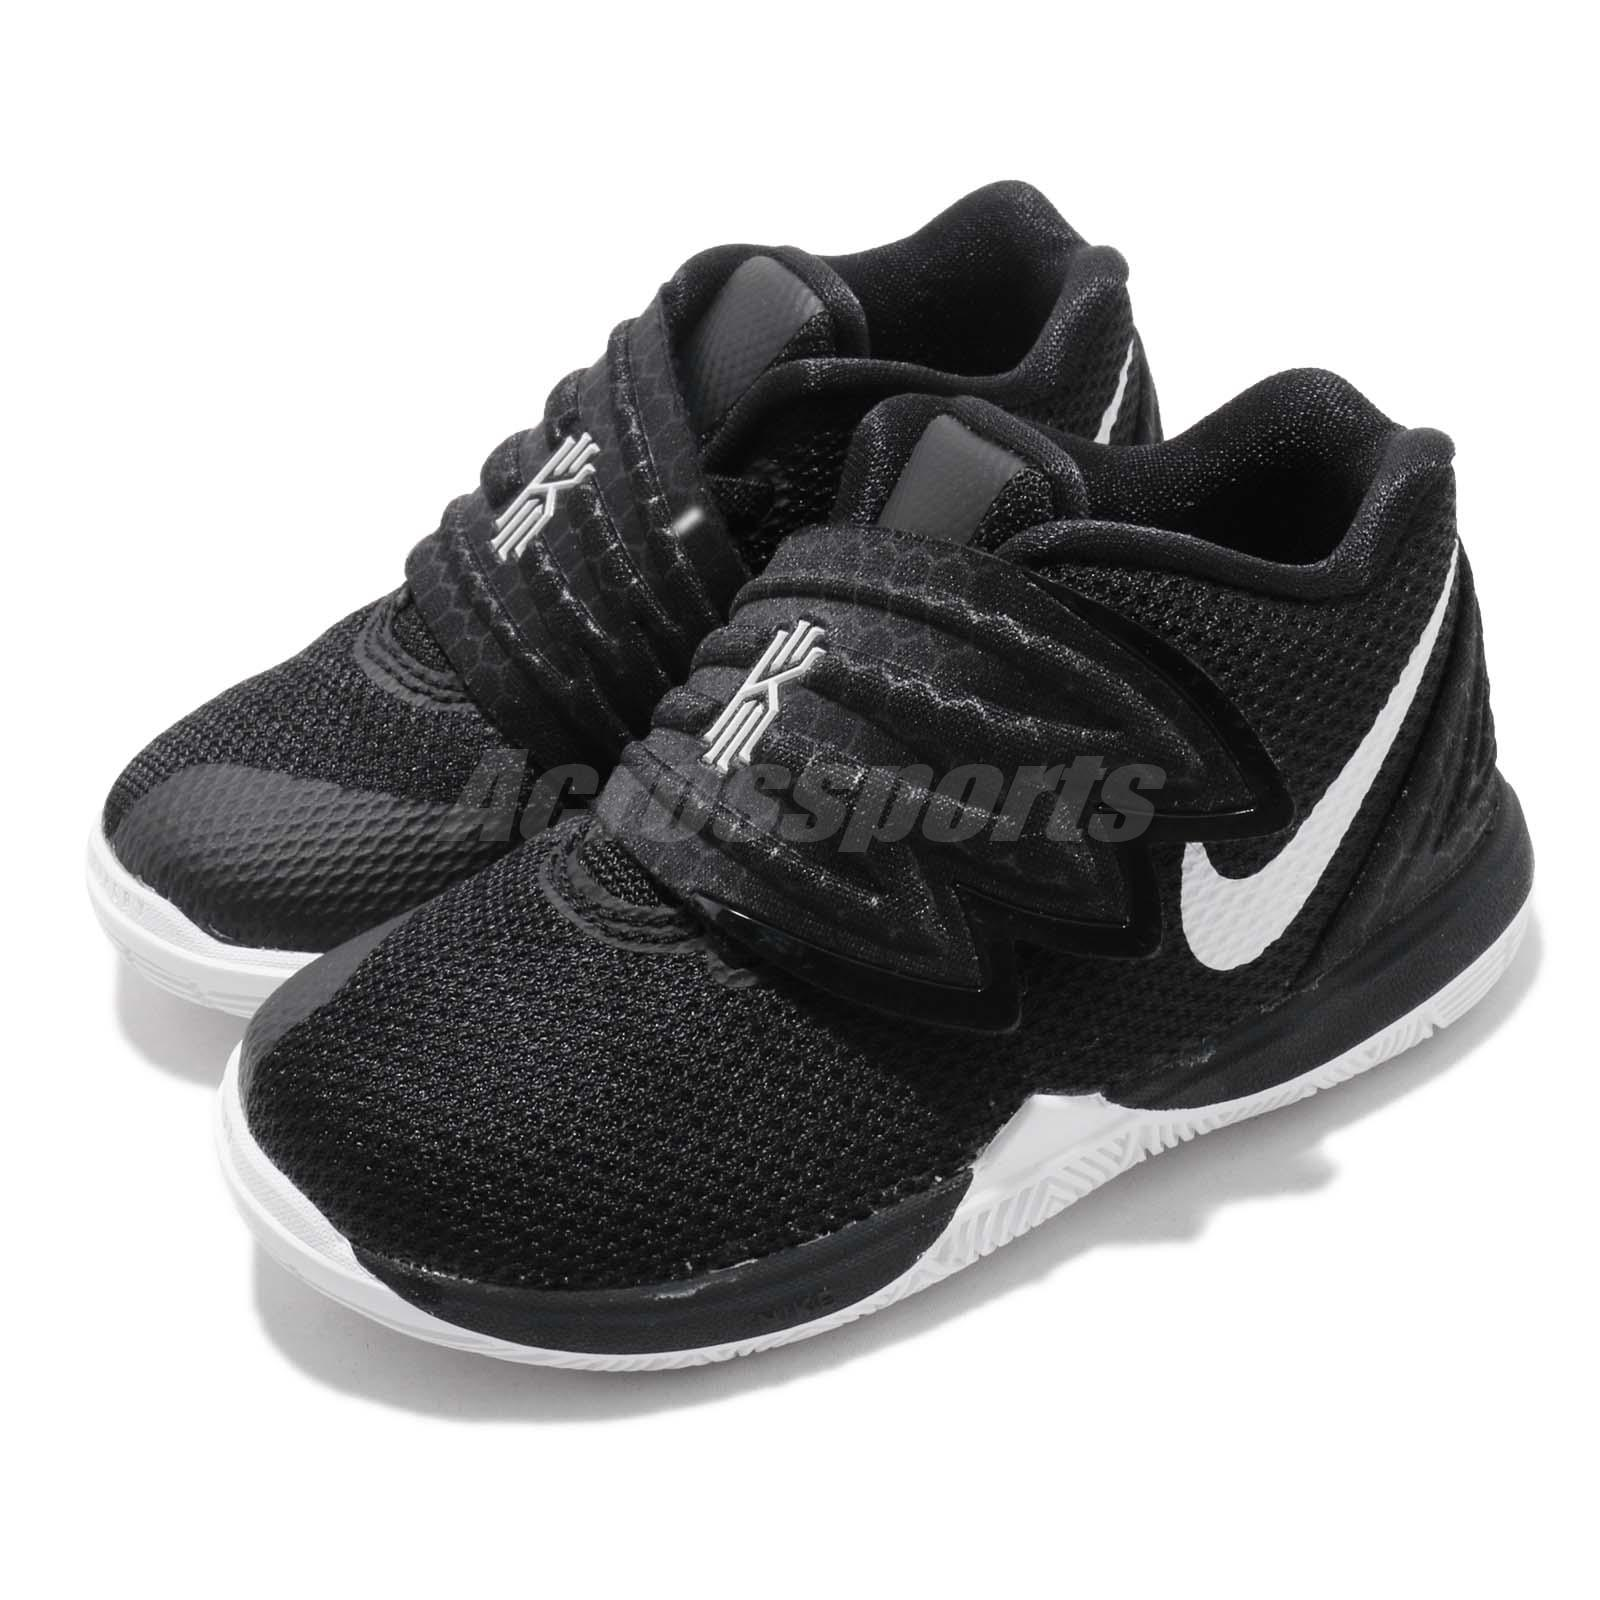 f8a34982274b Details about Nike Kyrie 5 TD Black White Irving Toddler Infant Shoes Baby  Sneakers AQ2459-901